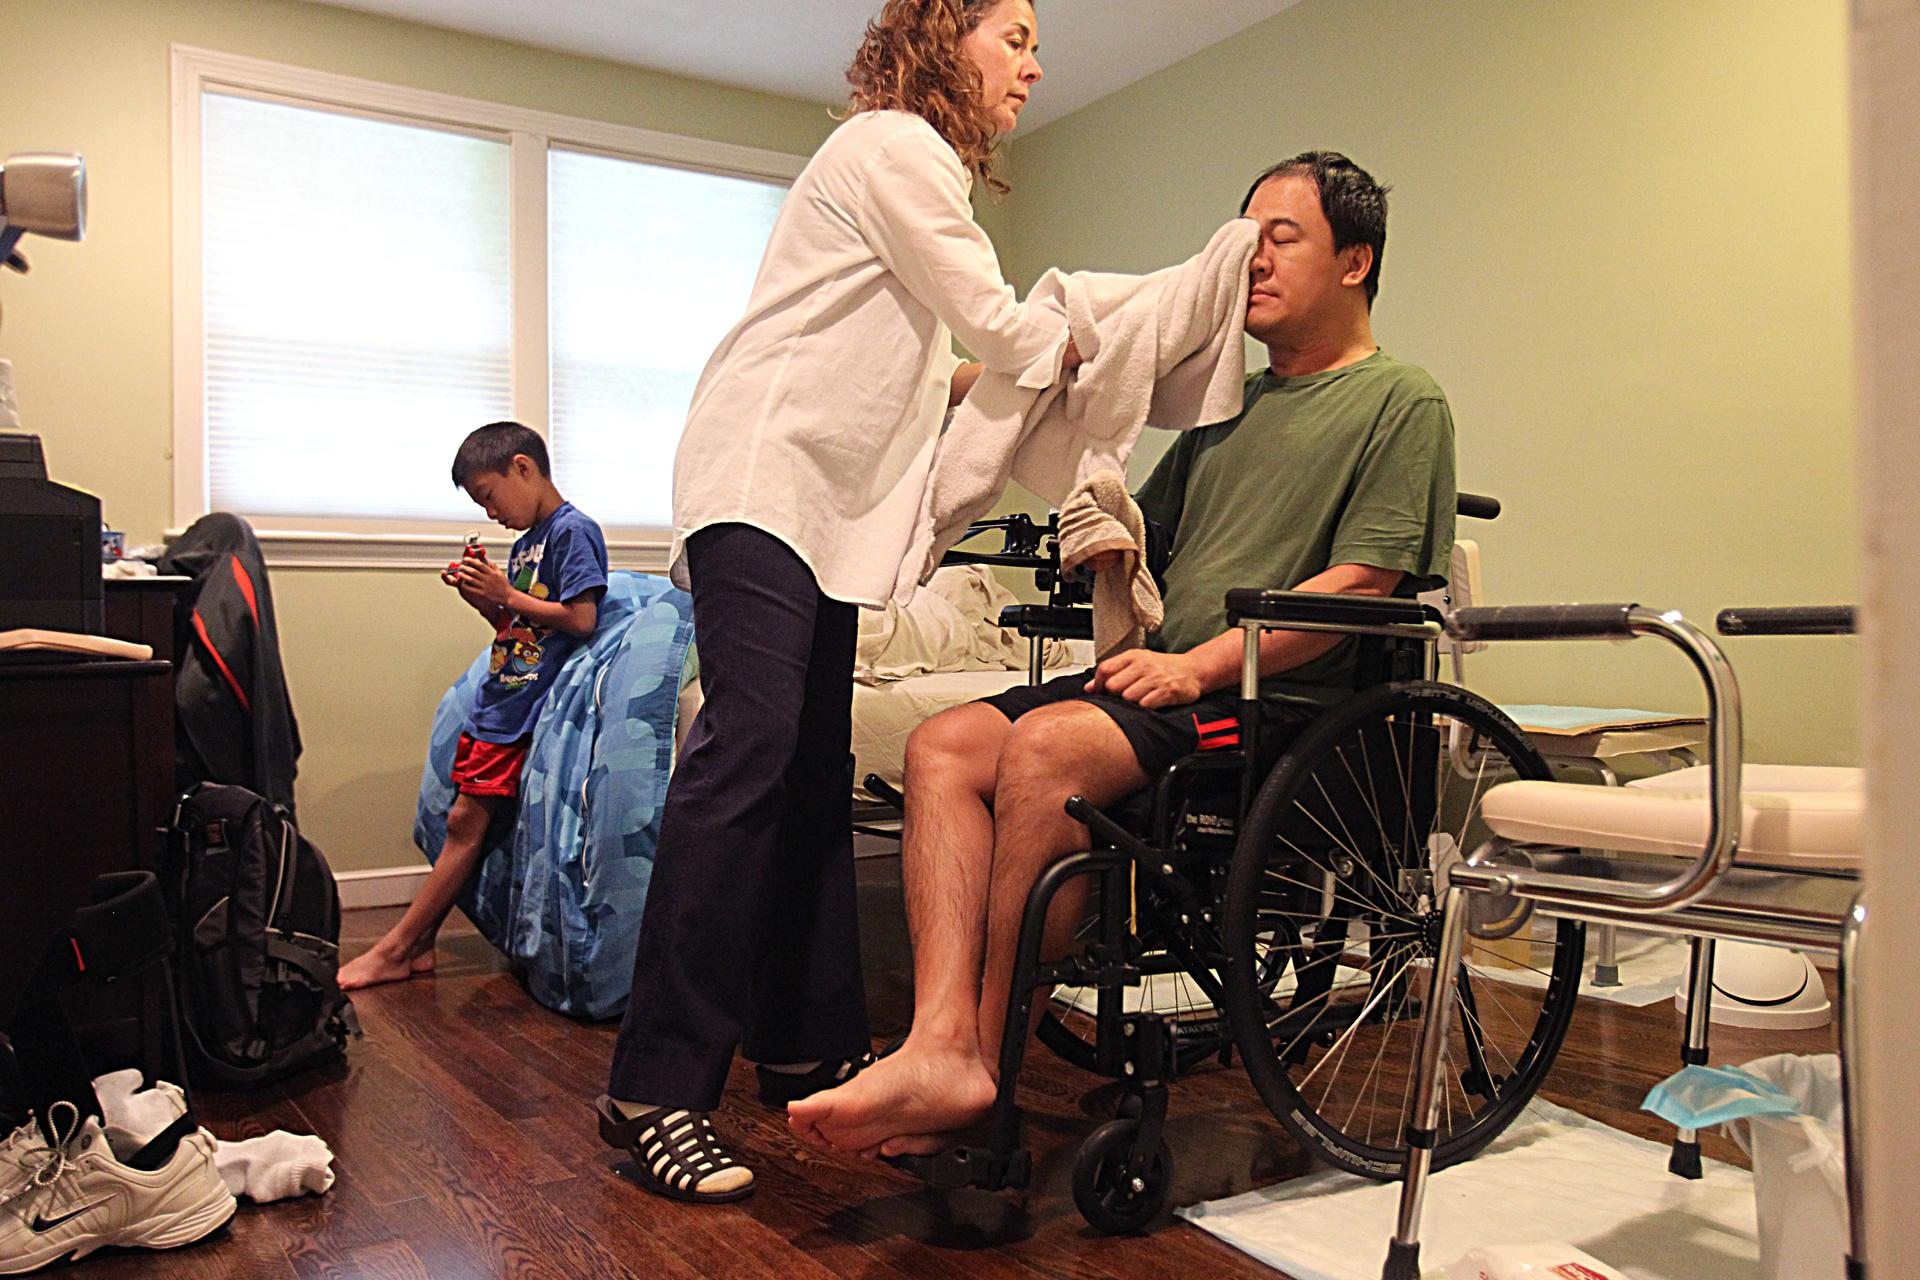 SUZANNE KREITER/GLOBE STAFF. Tony Meng, of Westwood, now needs a home health aide for basic tasks.